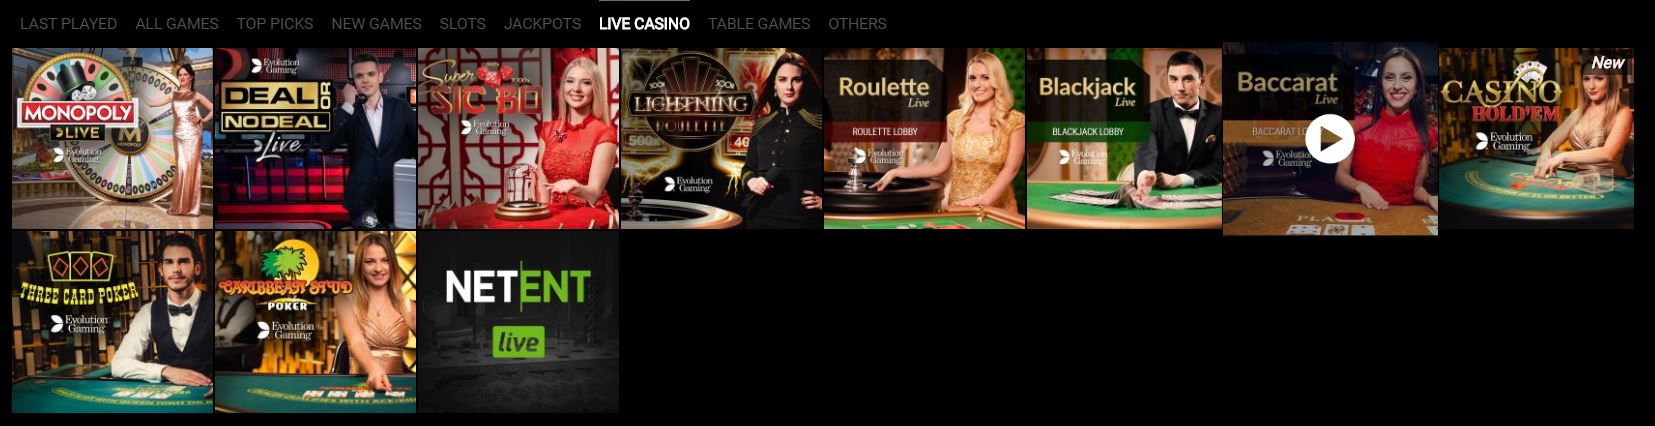 Live Casino at Voodoo Dreams